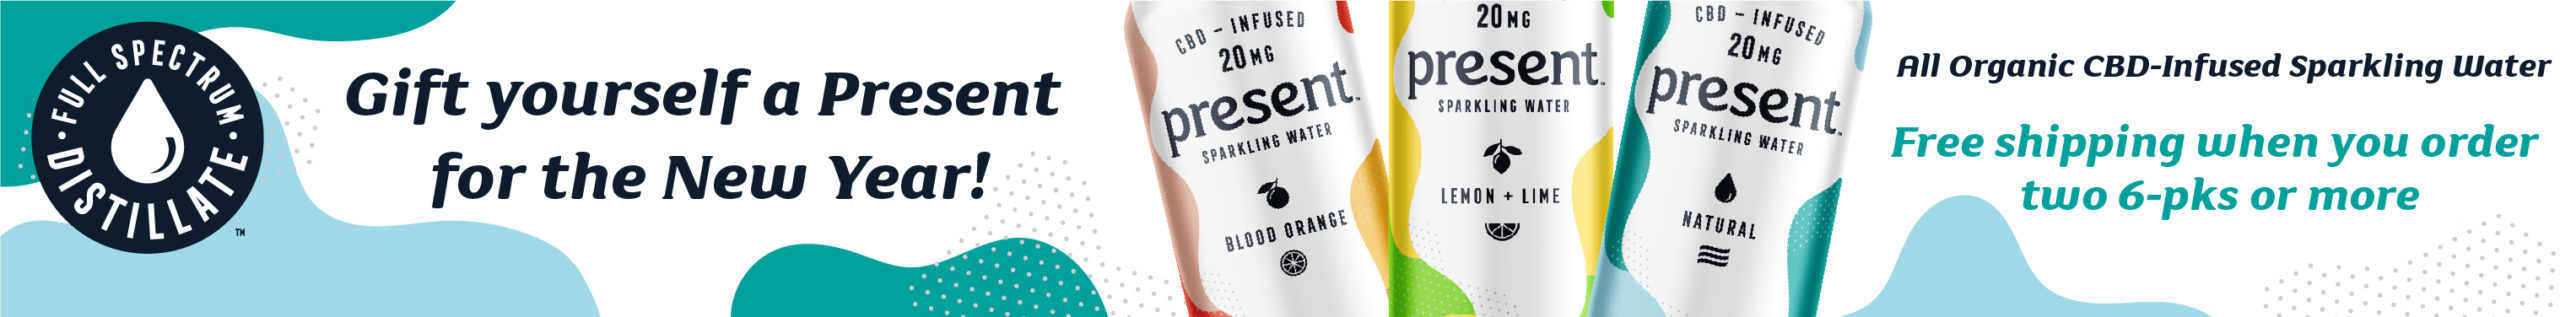 Present CBD Water buy 2 promotion